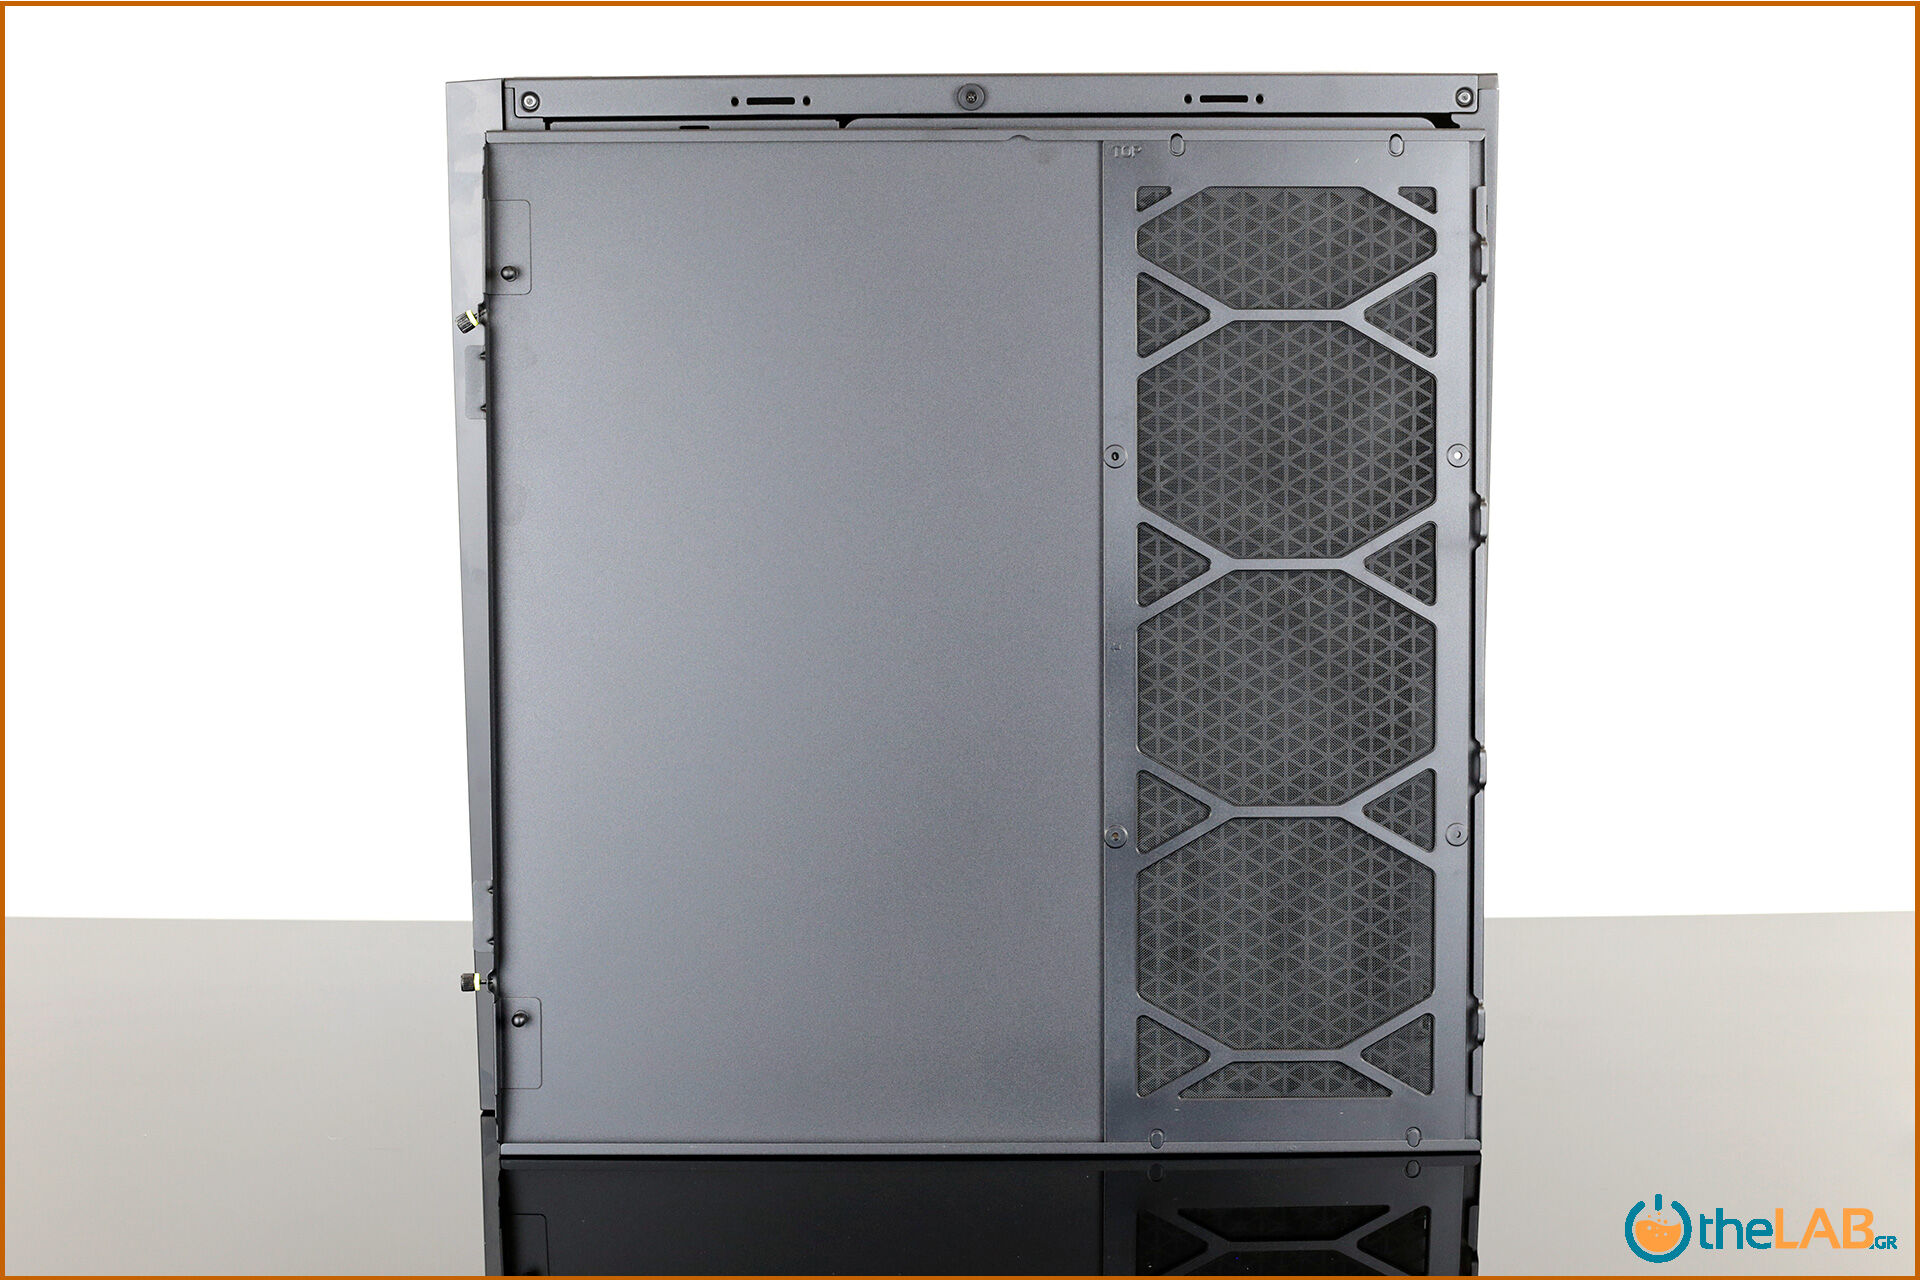 Corsair_icue_5000D__case_smart_exterior_interior_mid_tower_gaming_case_smart_review_image660.jpg